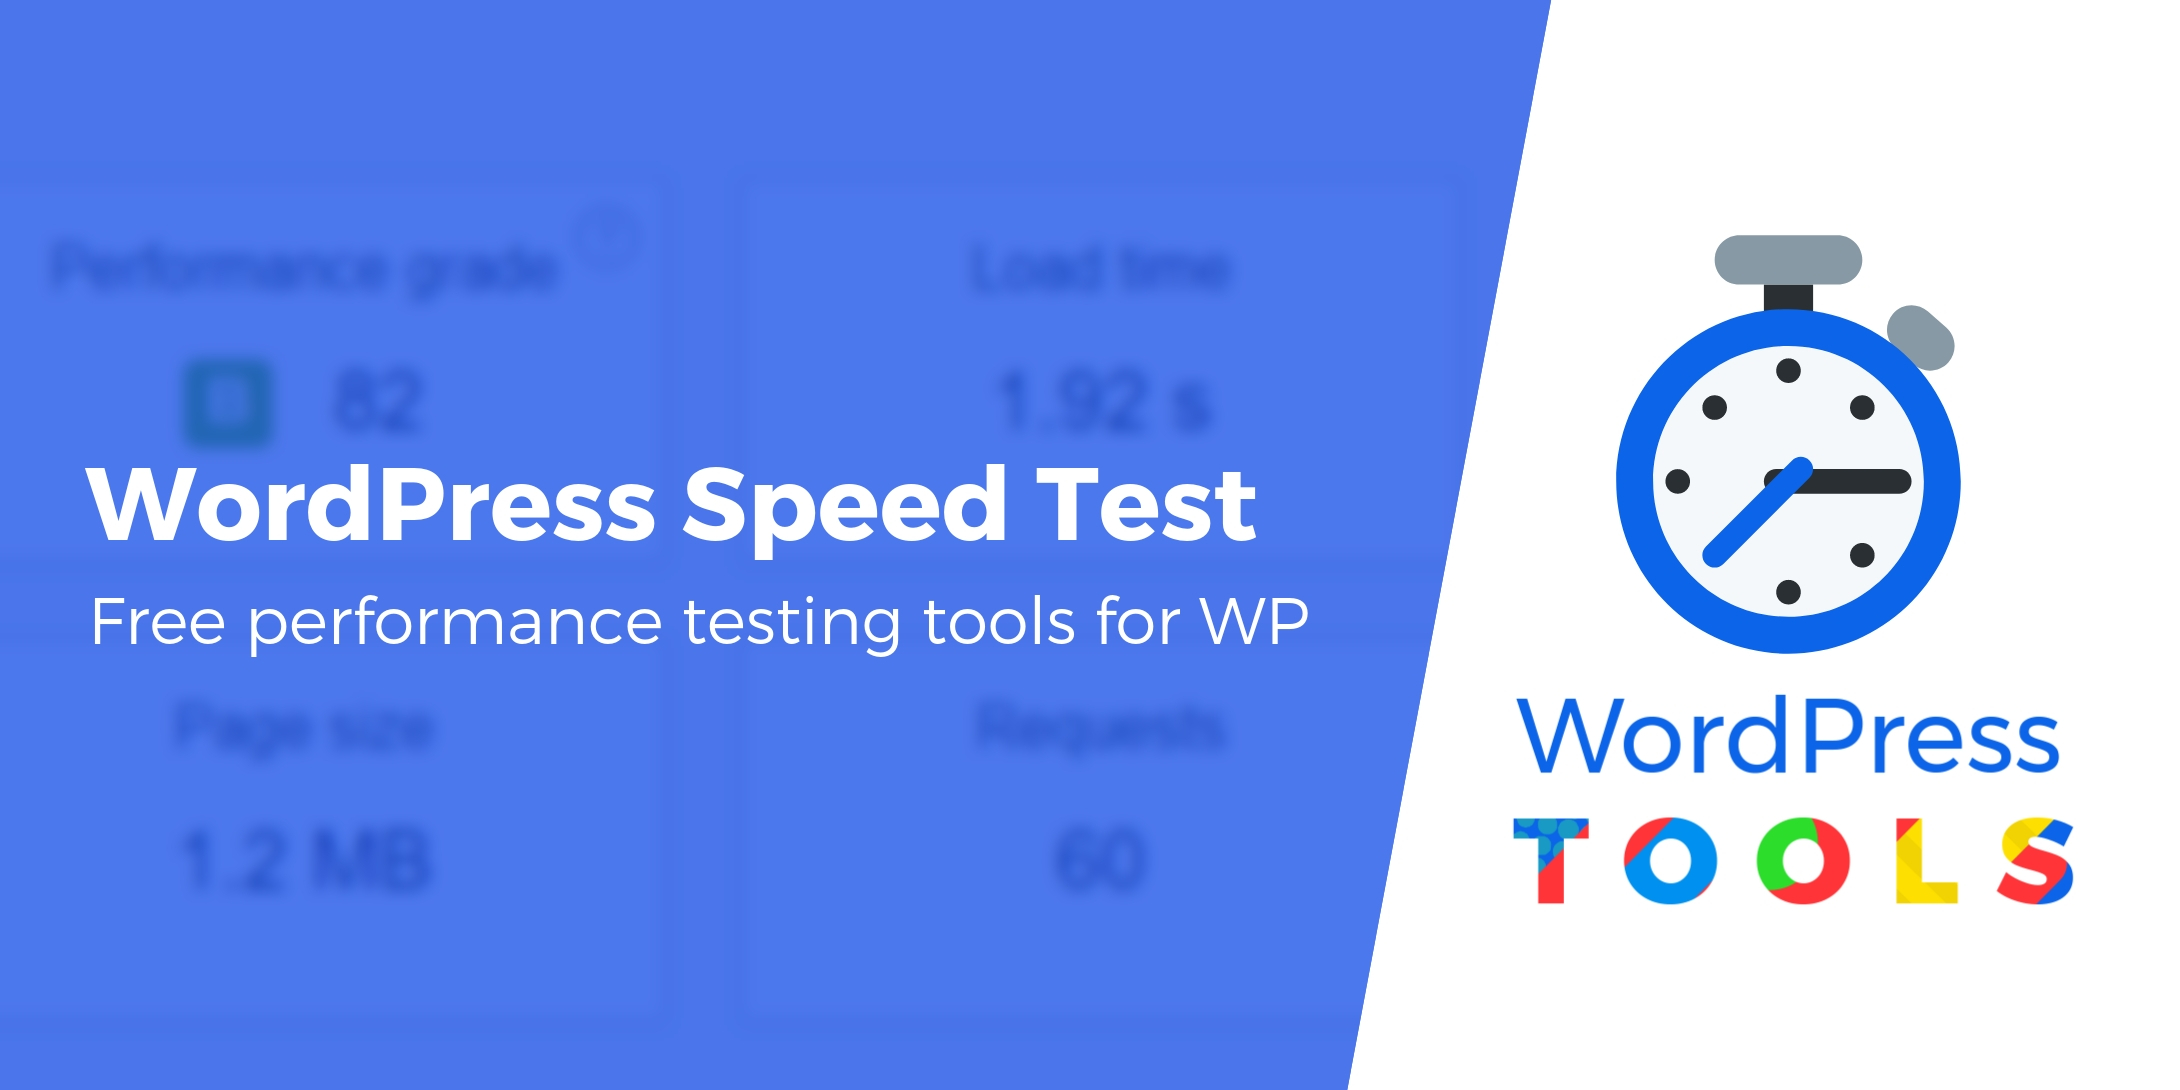 5 Best WordPress Speed Test Tools: Here's How to Find Your Site's Load Time